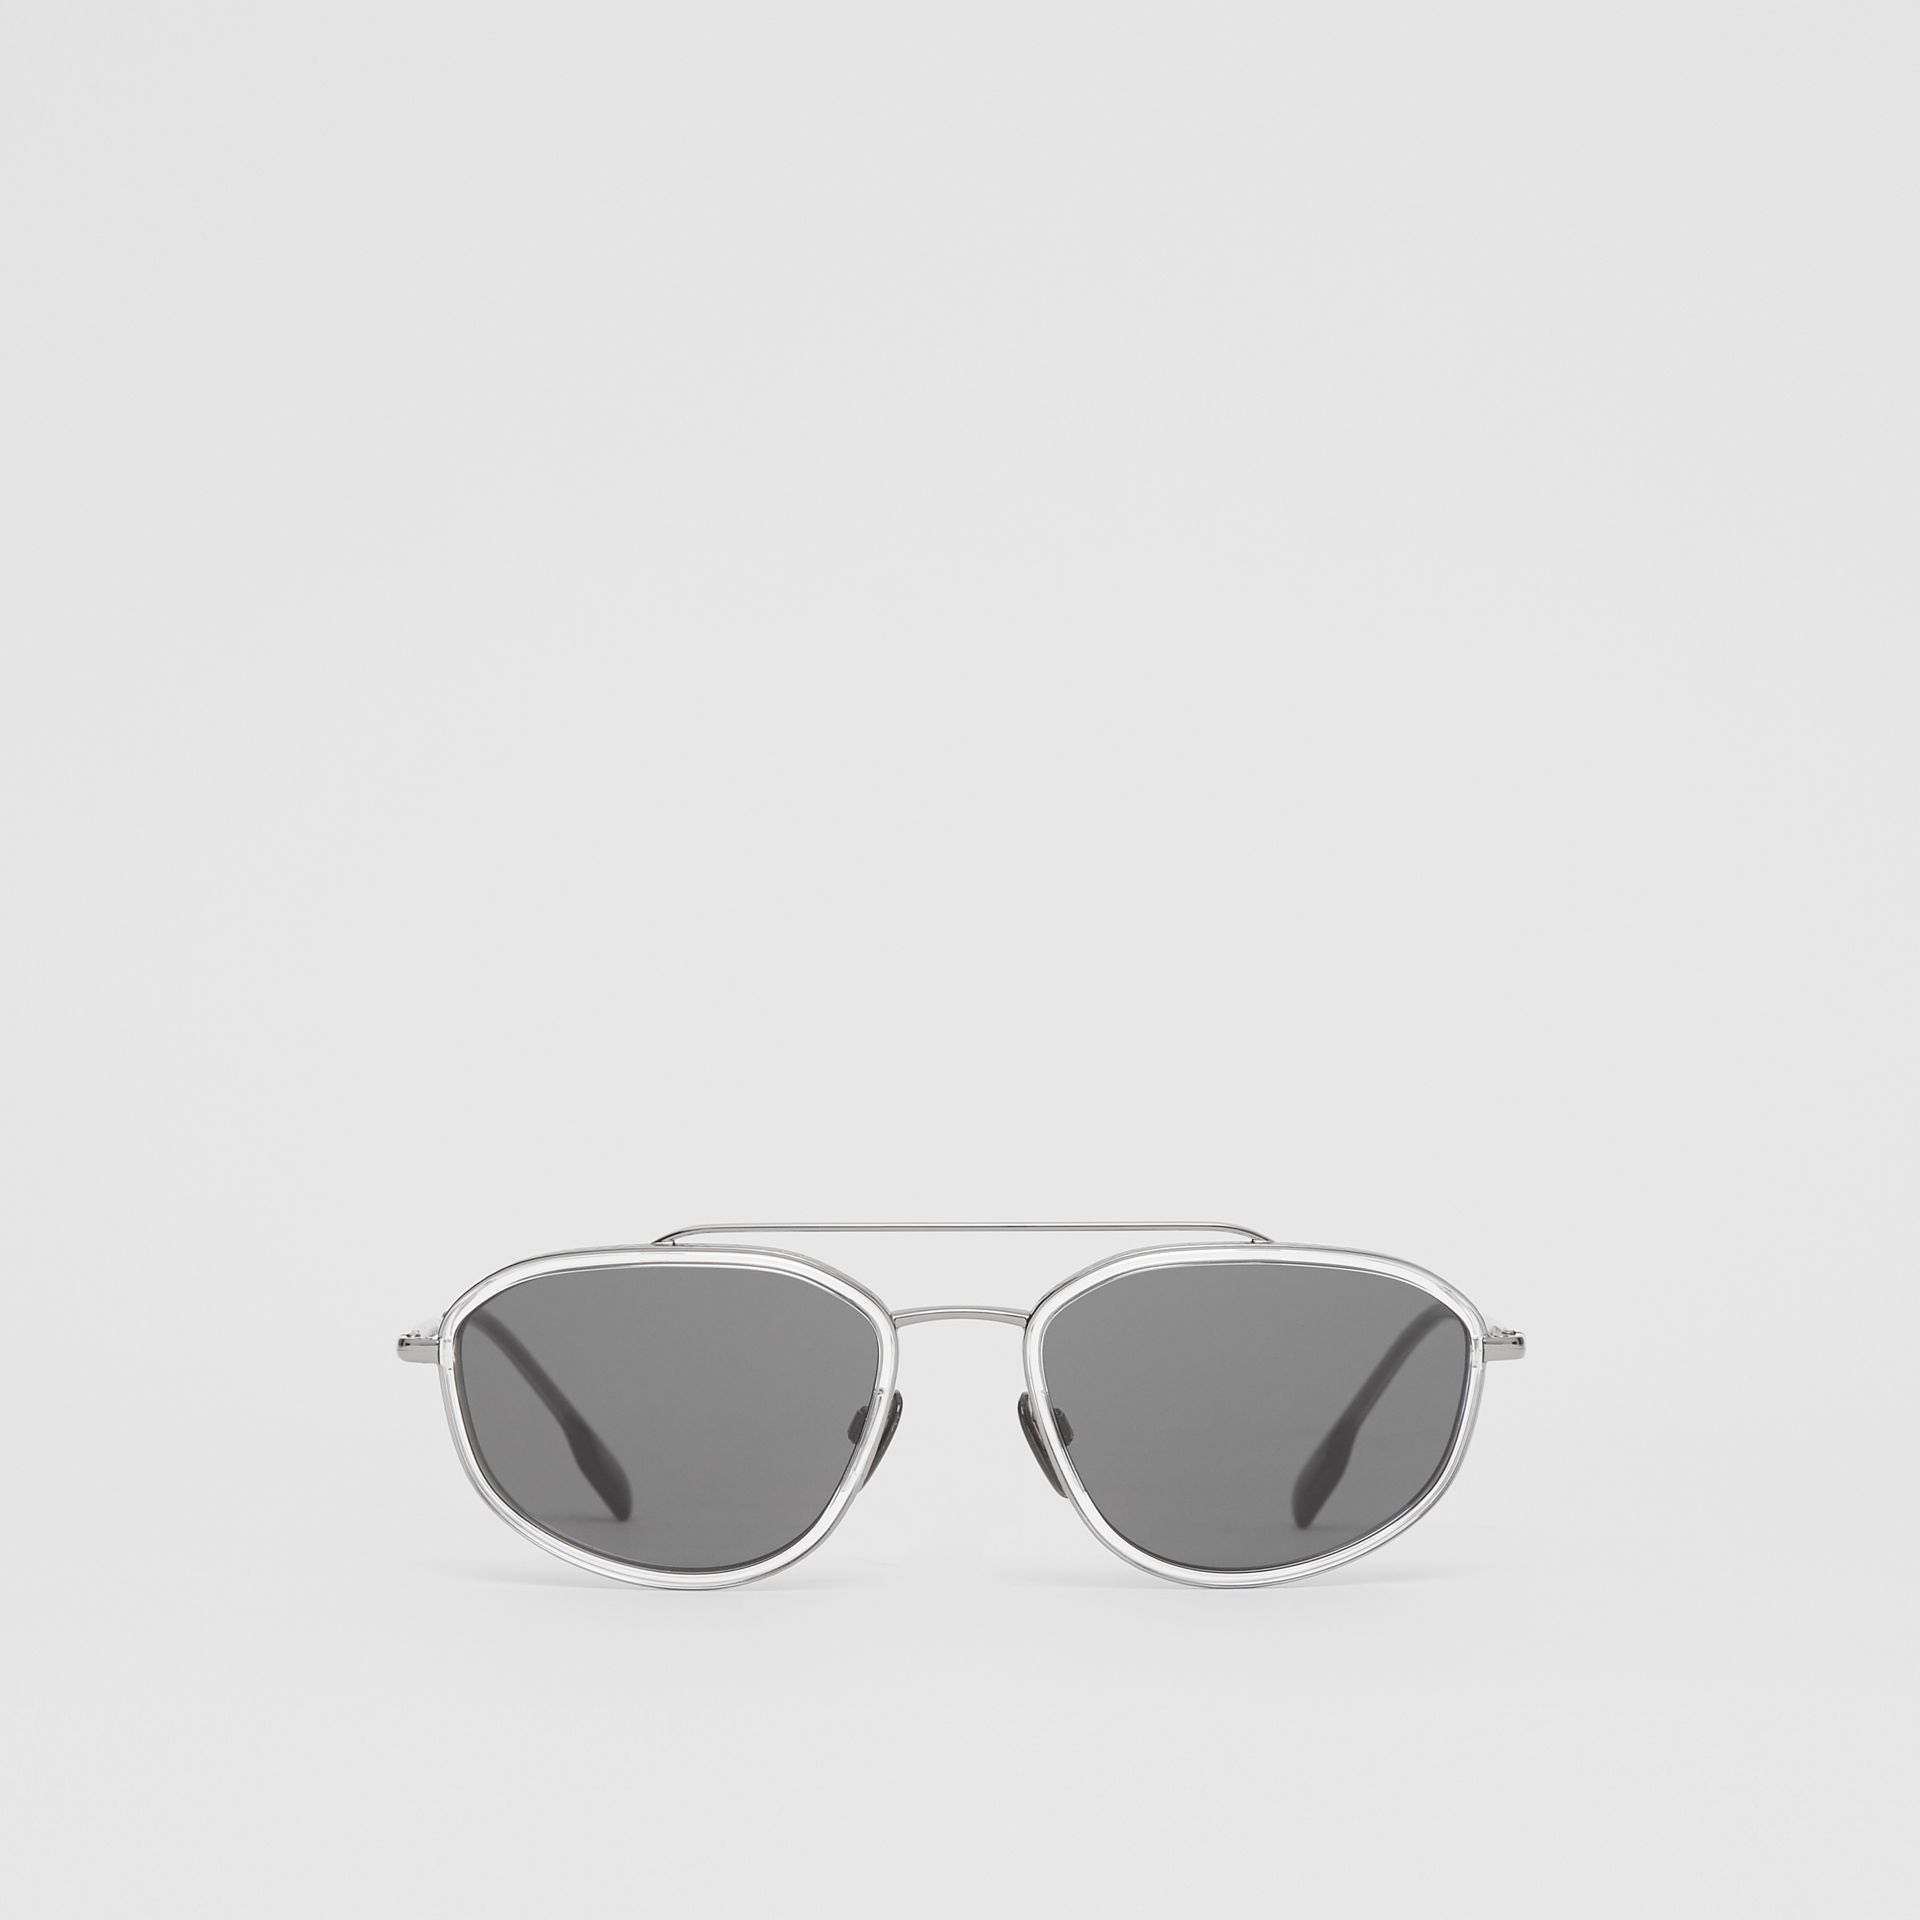 Geometric Navigator Sunglasses in Gunmetal Grey - Men | Burberry United Kingdom - gallery image 0